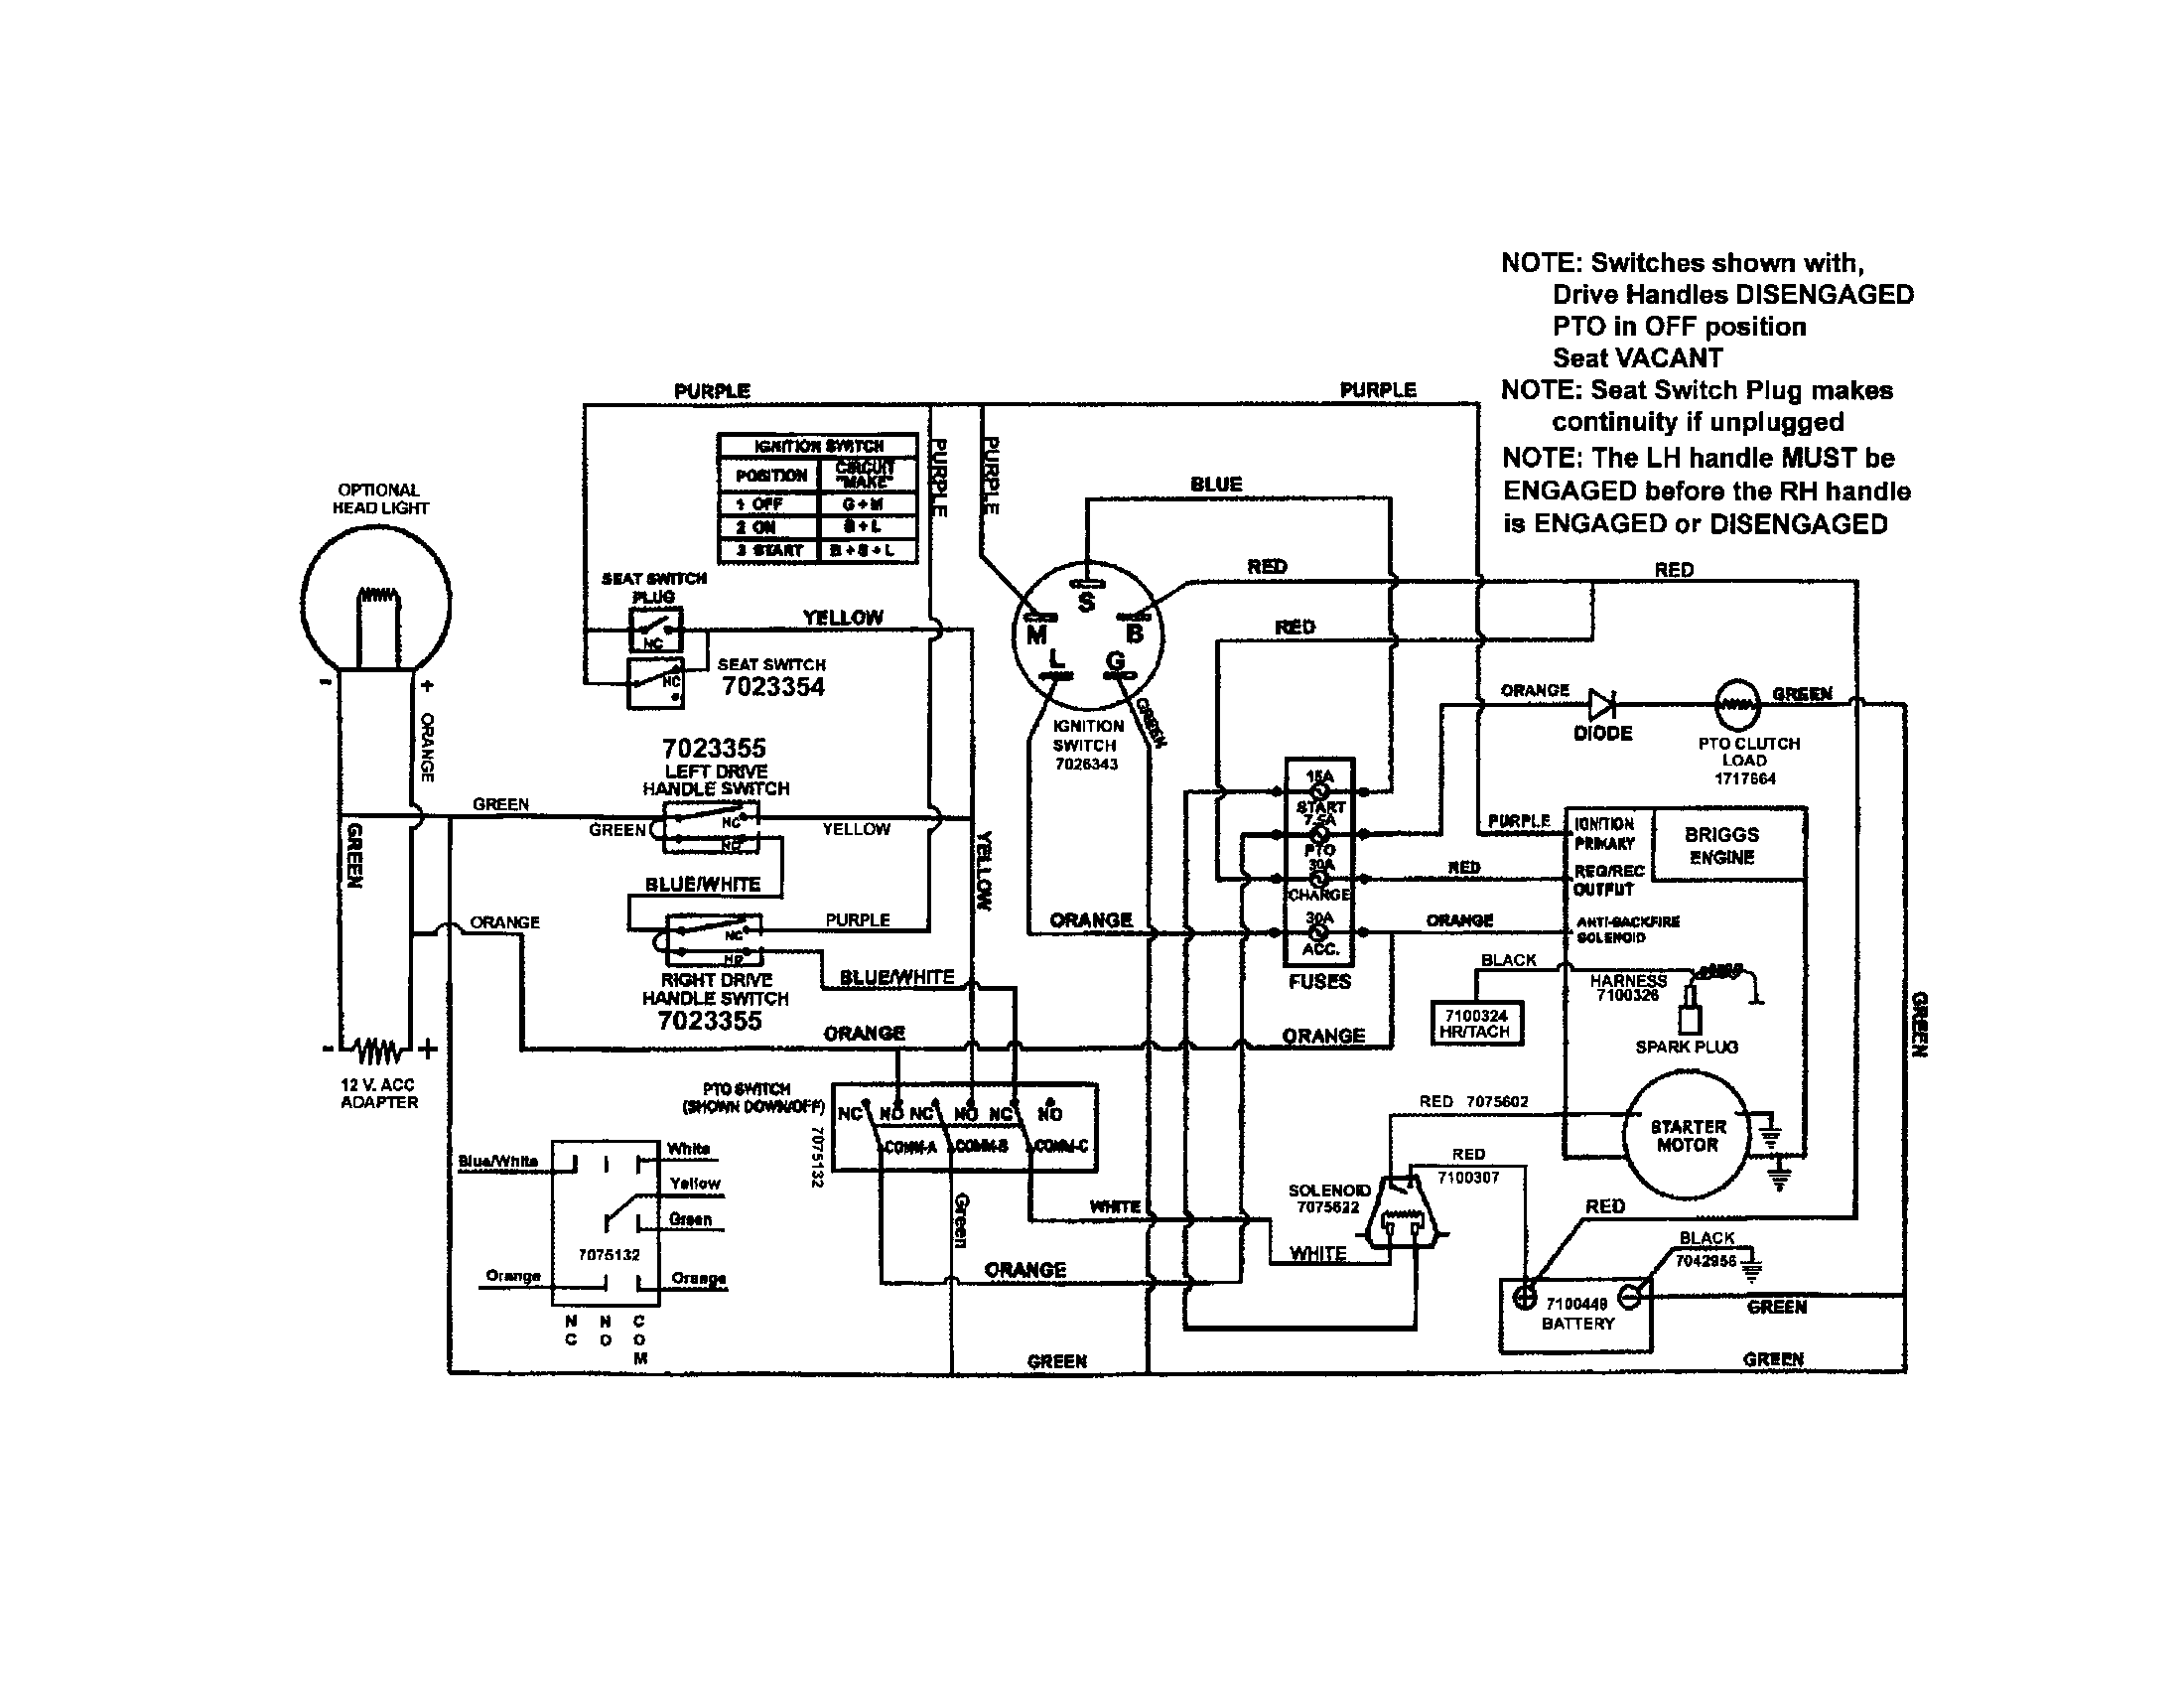 briggs and stratton 16 hp v twin opposed wiring diagram. Black Bedroom Furniture Sets. Home Design Ideas